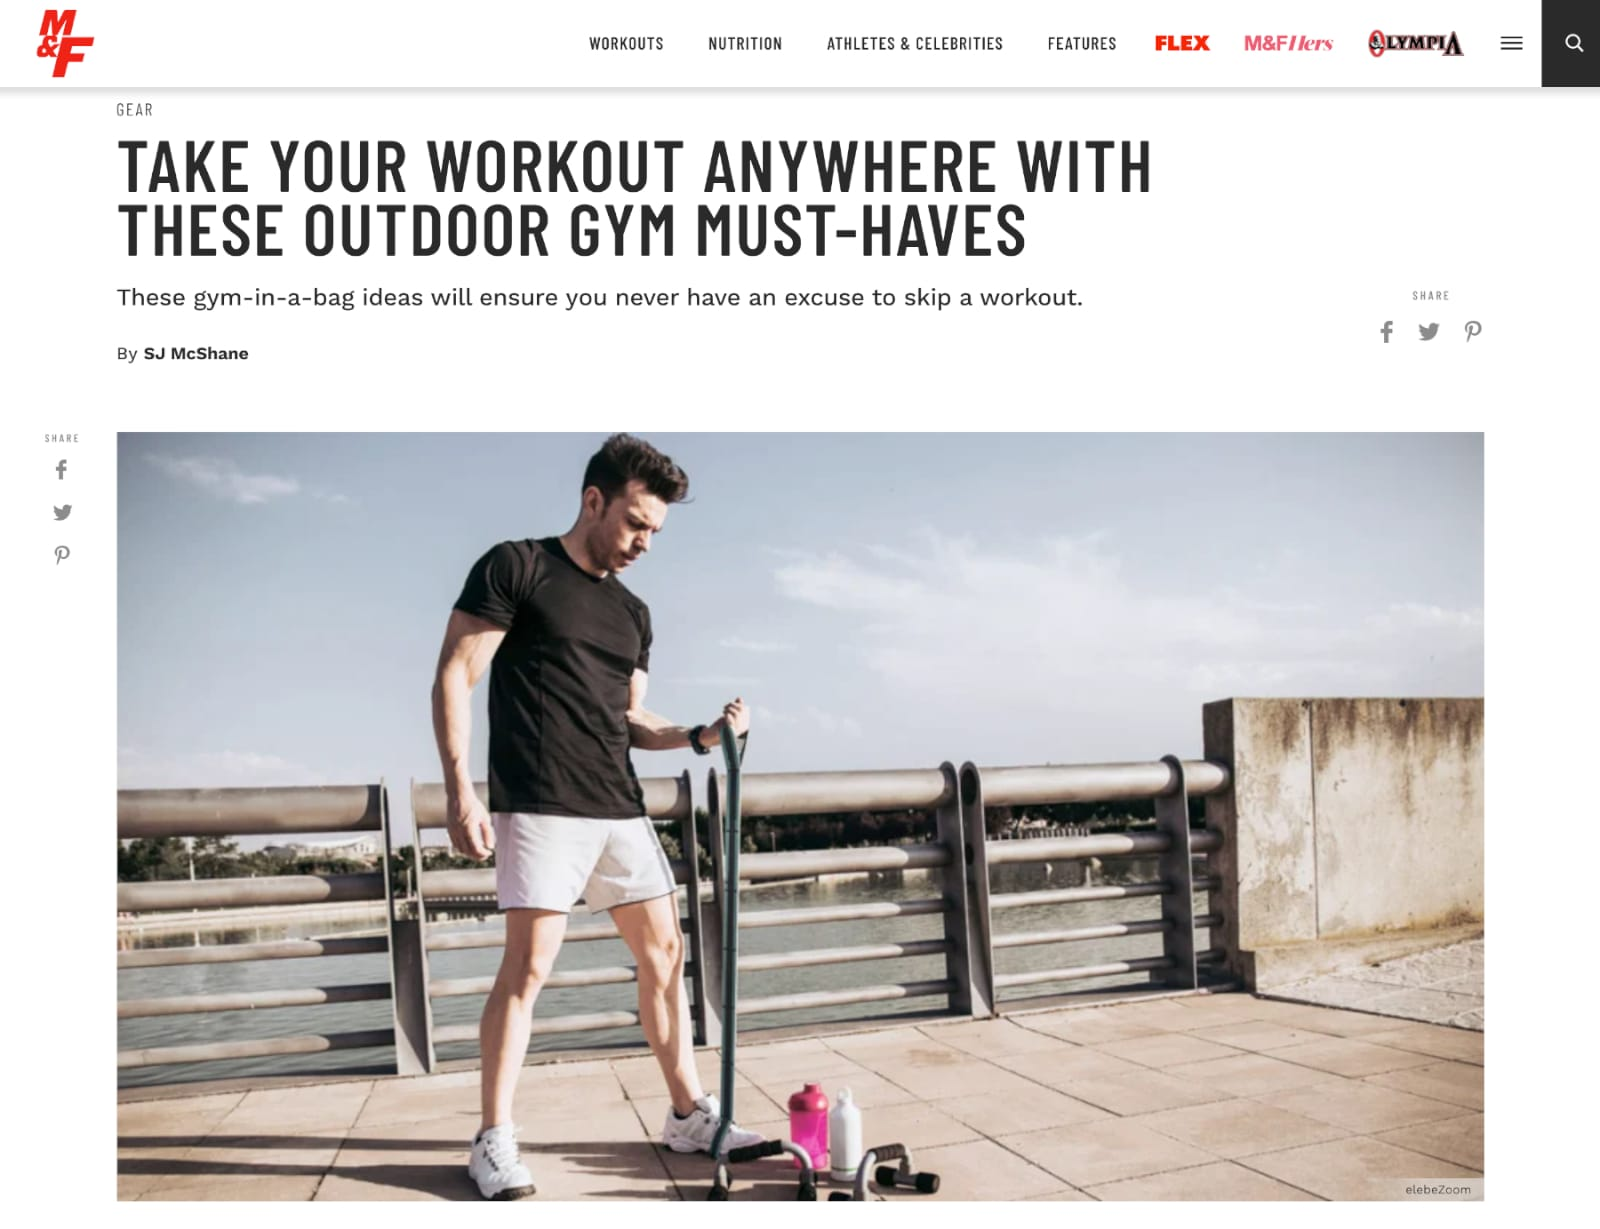 Muscle & Fitness Article: Take Your Workout Anywhere With These Outdoor Gym Must-Haves